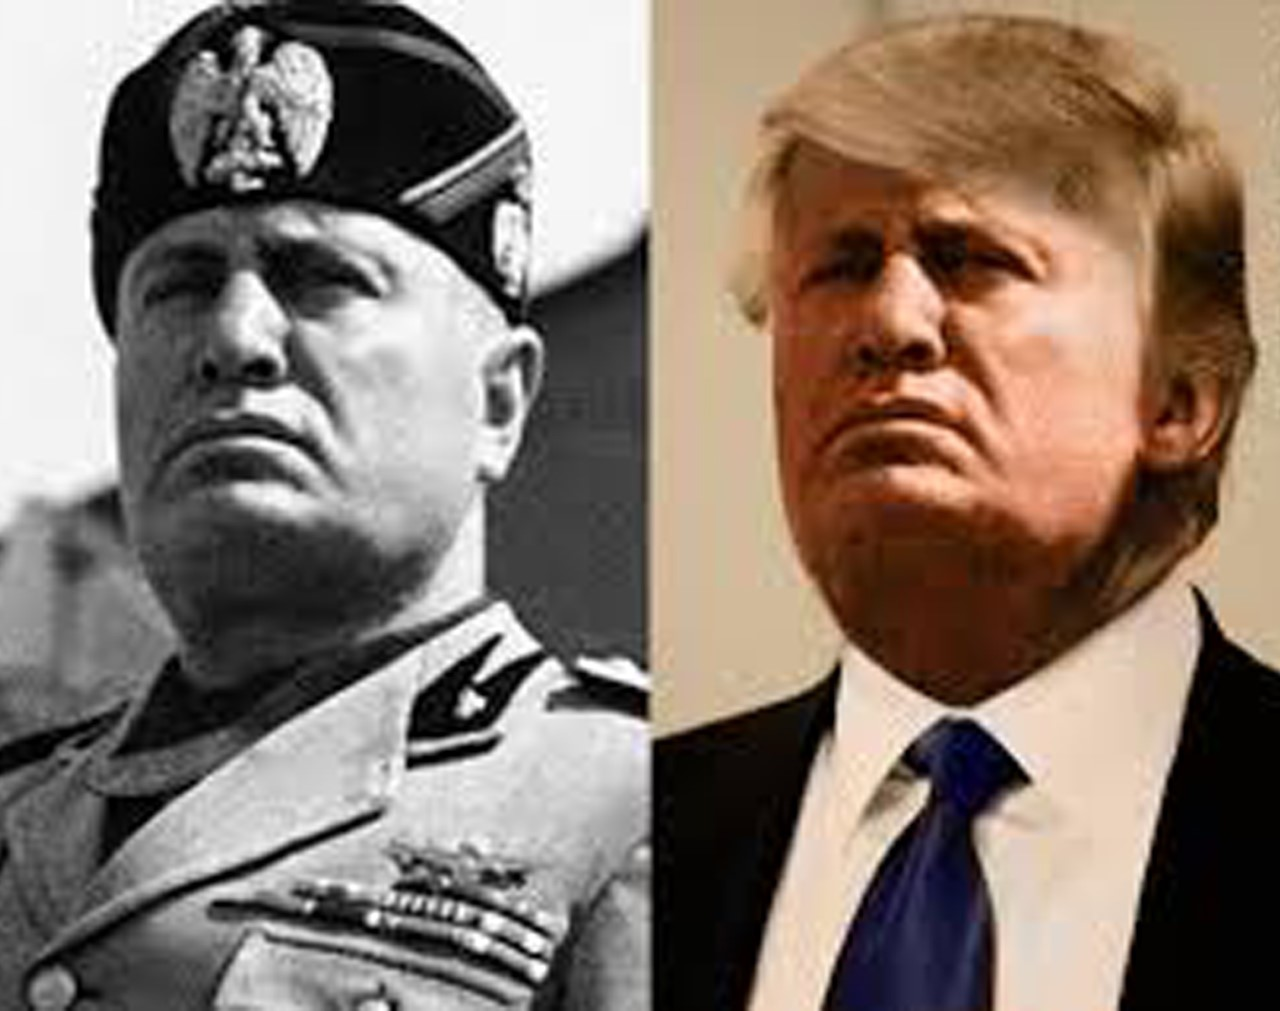 thumbnail_Trump-Mussolini-Fascist-Twins-1